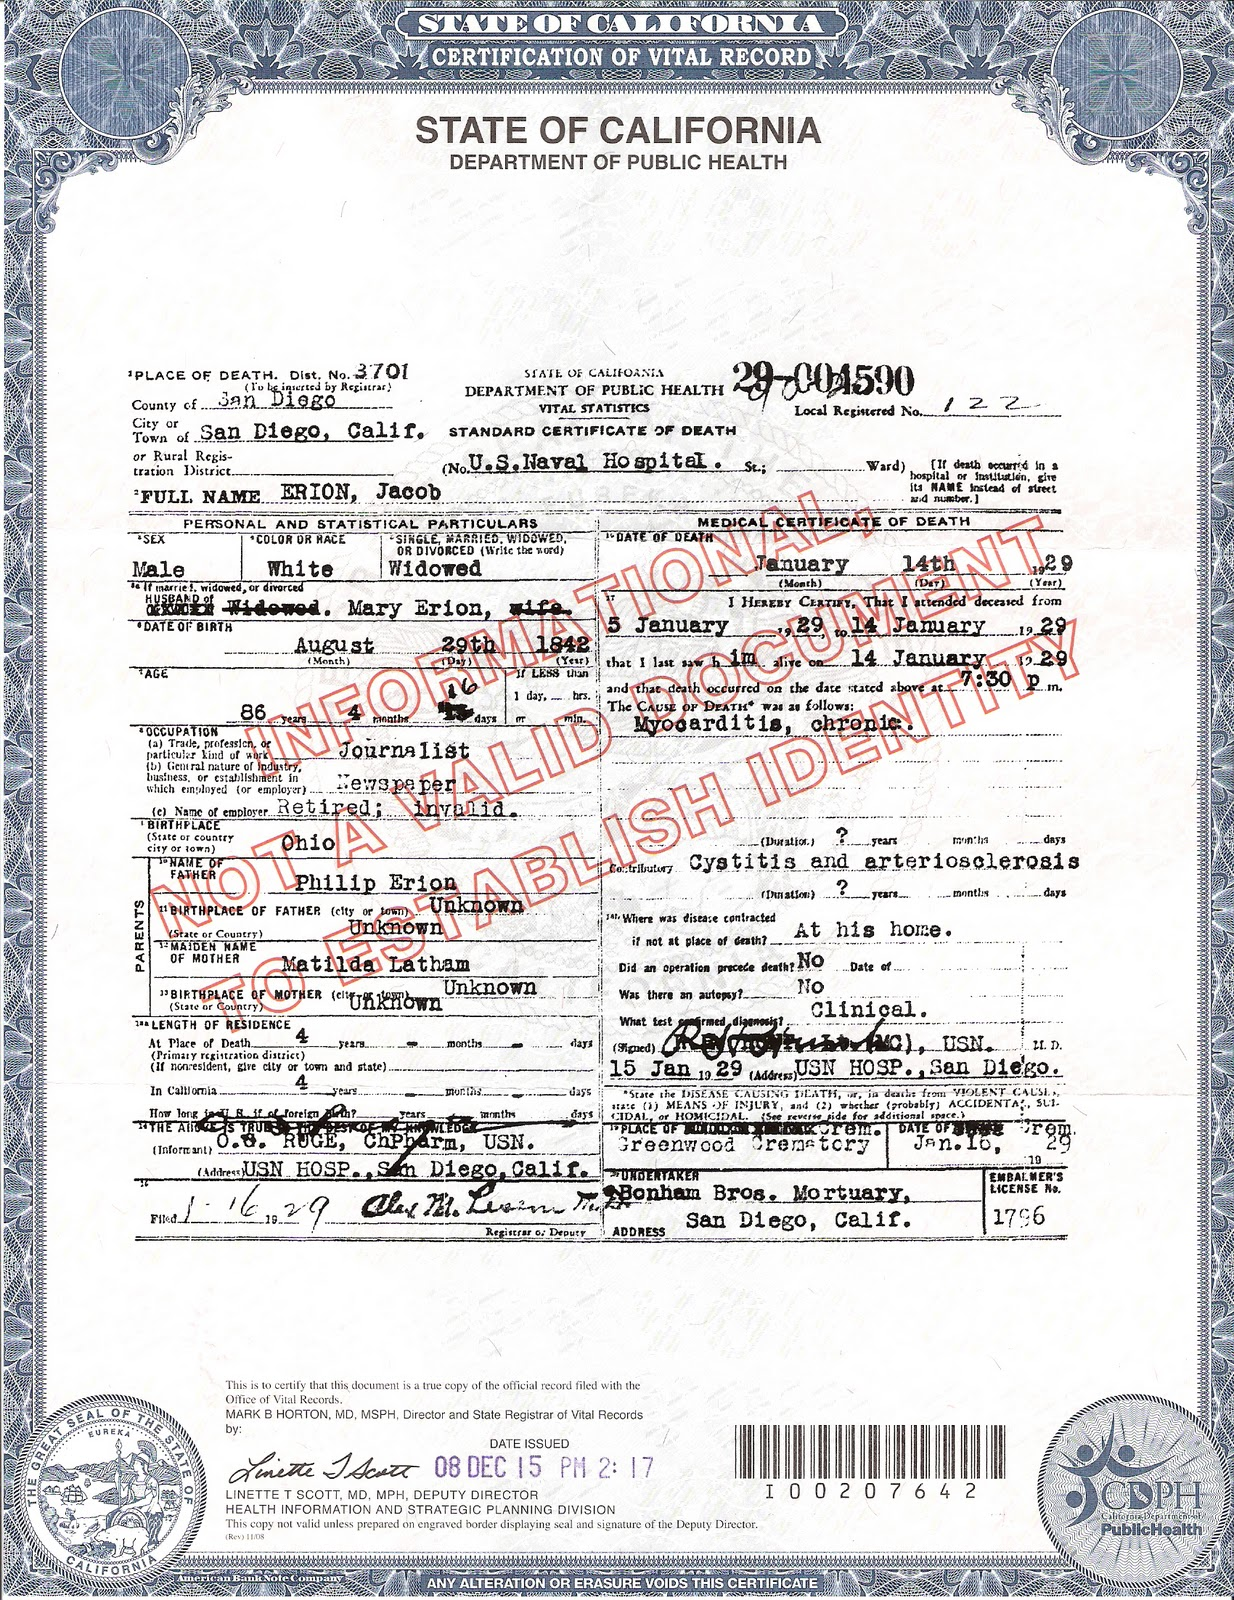 Erion krumwied and related families genealogy death certificate for jacob b erion 1betcityfo Images